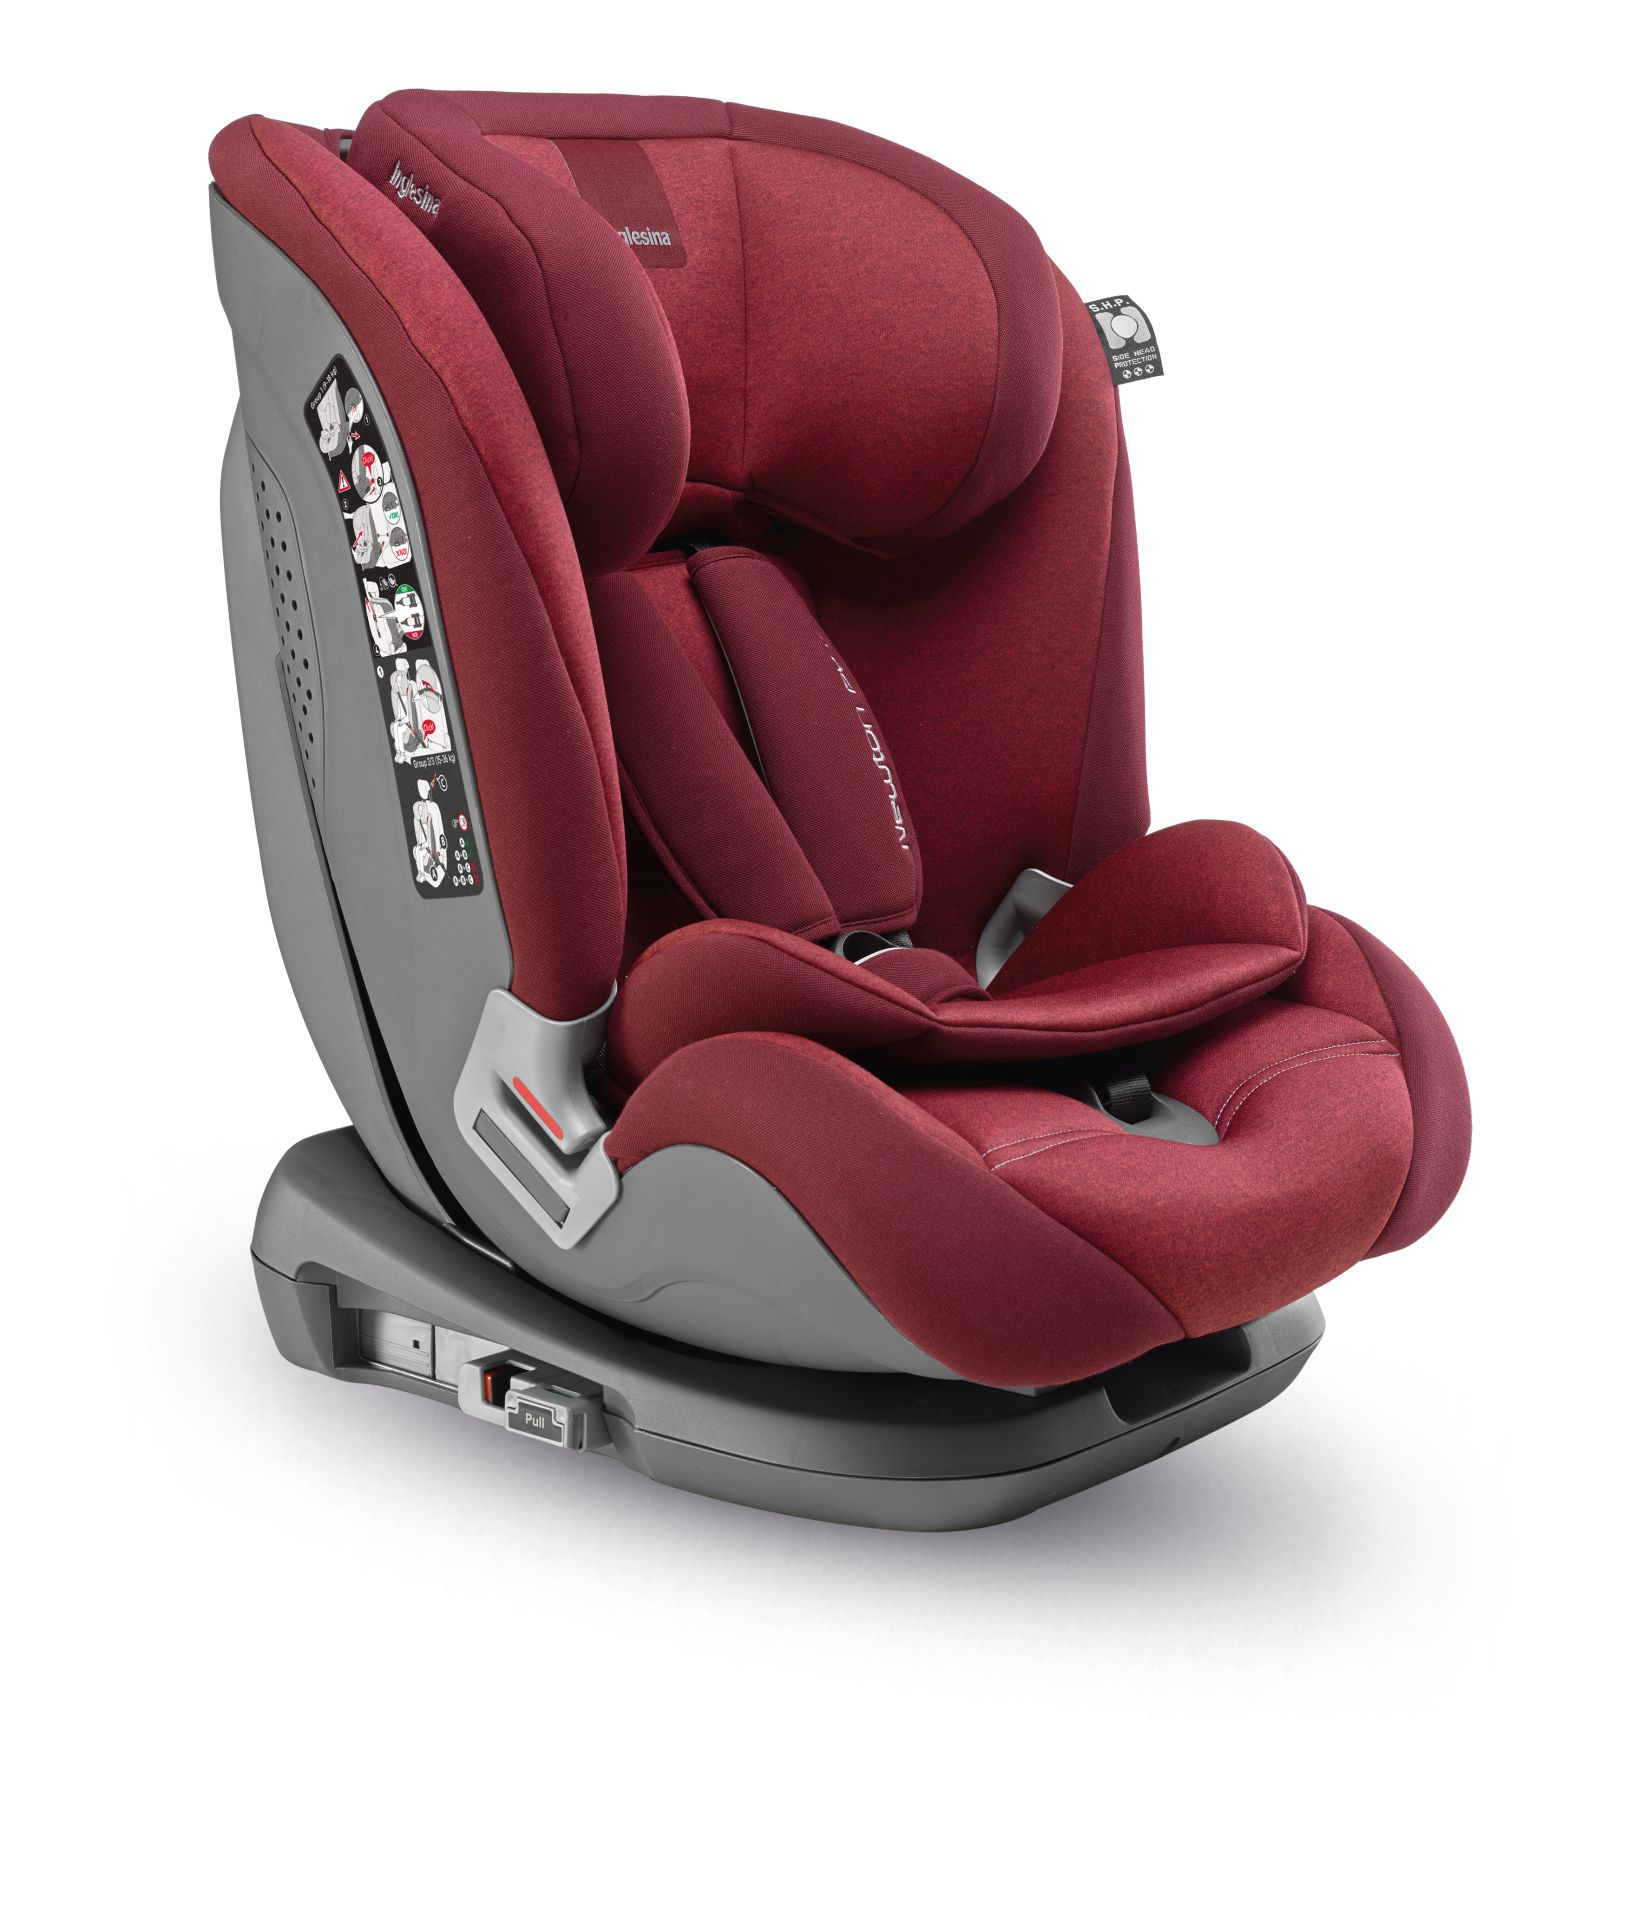 Groovy Inglesina Child Car Seat Newton 1 2 3 Ifix 2019 Rot Buy At Ibusinesslaw Wood Chair Design Ideas Ibusinesslaworg